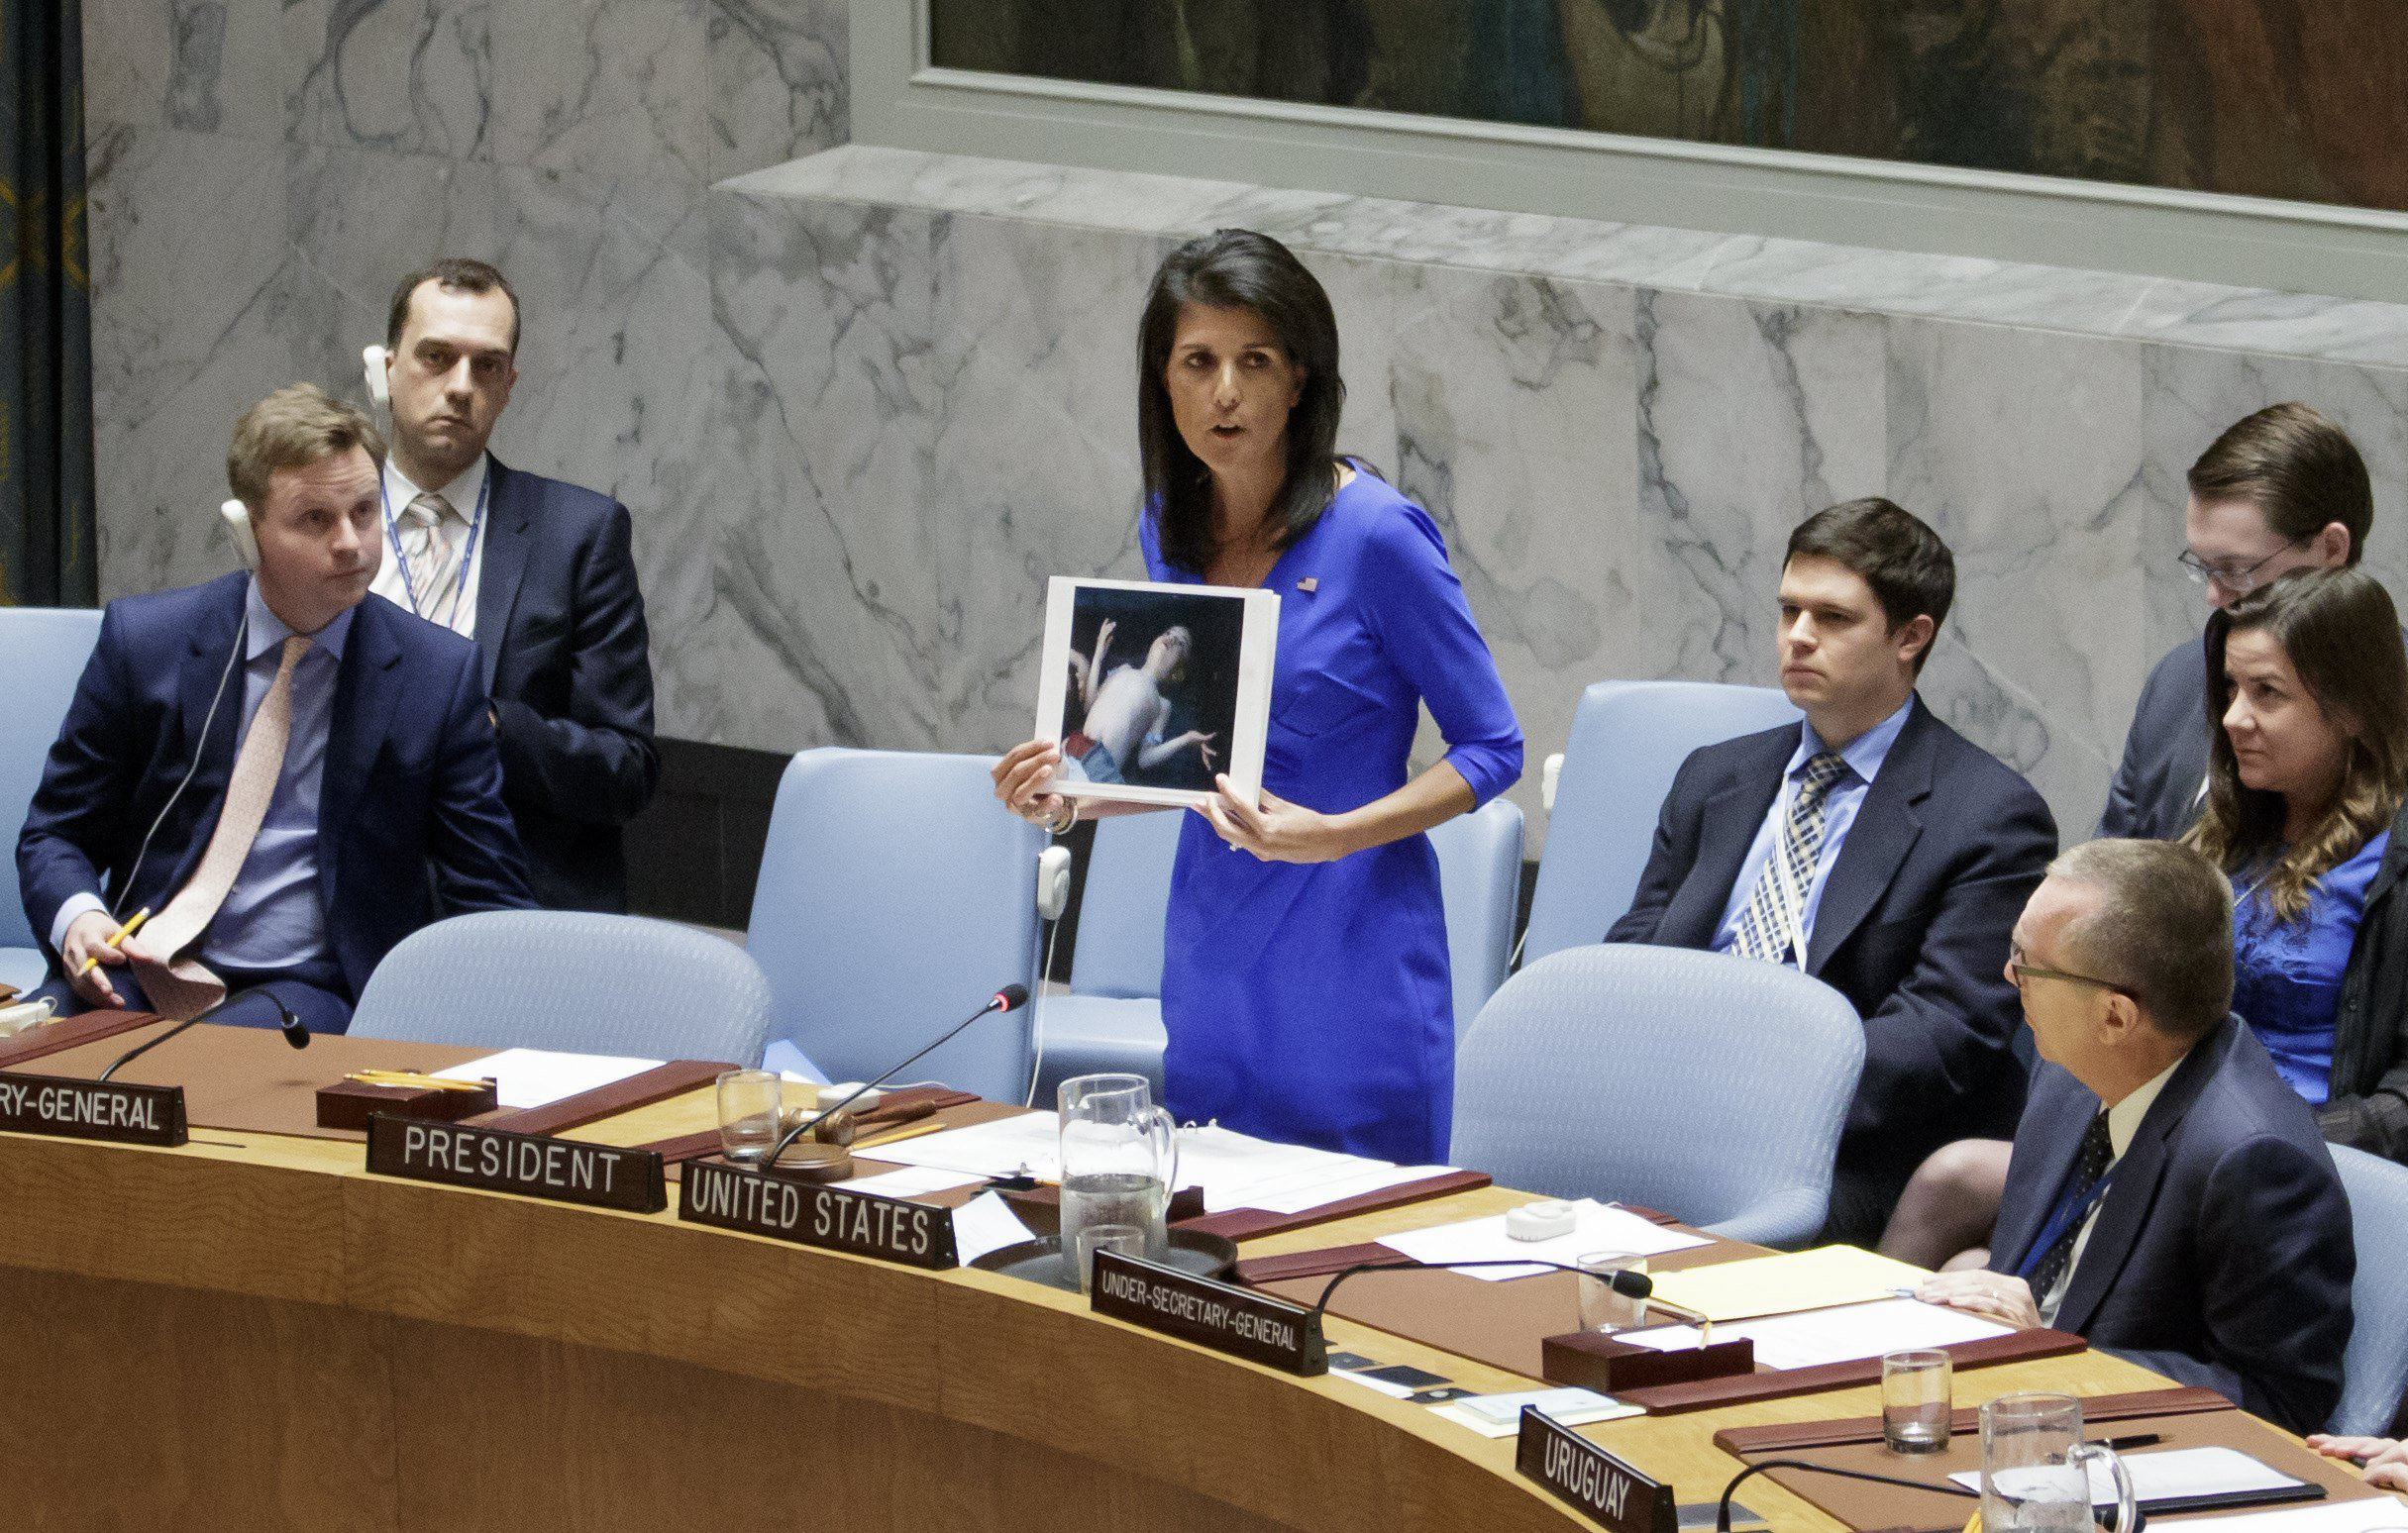 Nikki Haley, the U.S. Ambassador to the U.N., holds up pictures of victims of a chemical attack in Syria during an emergency meeting of the United Nations Security Council at the United Nations in New York on April 5, 2017.